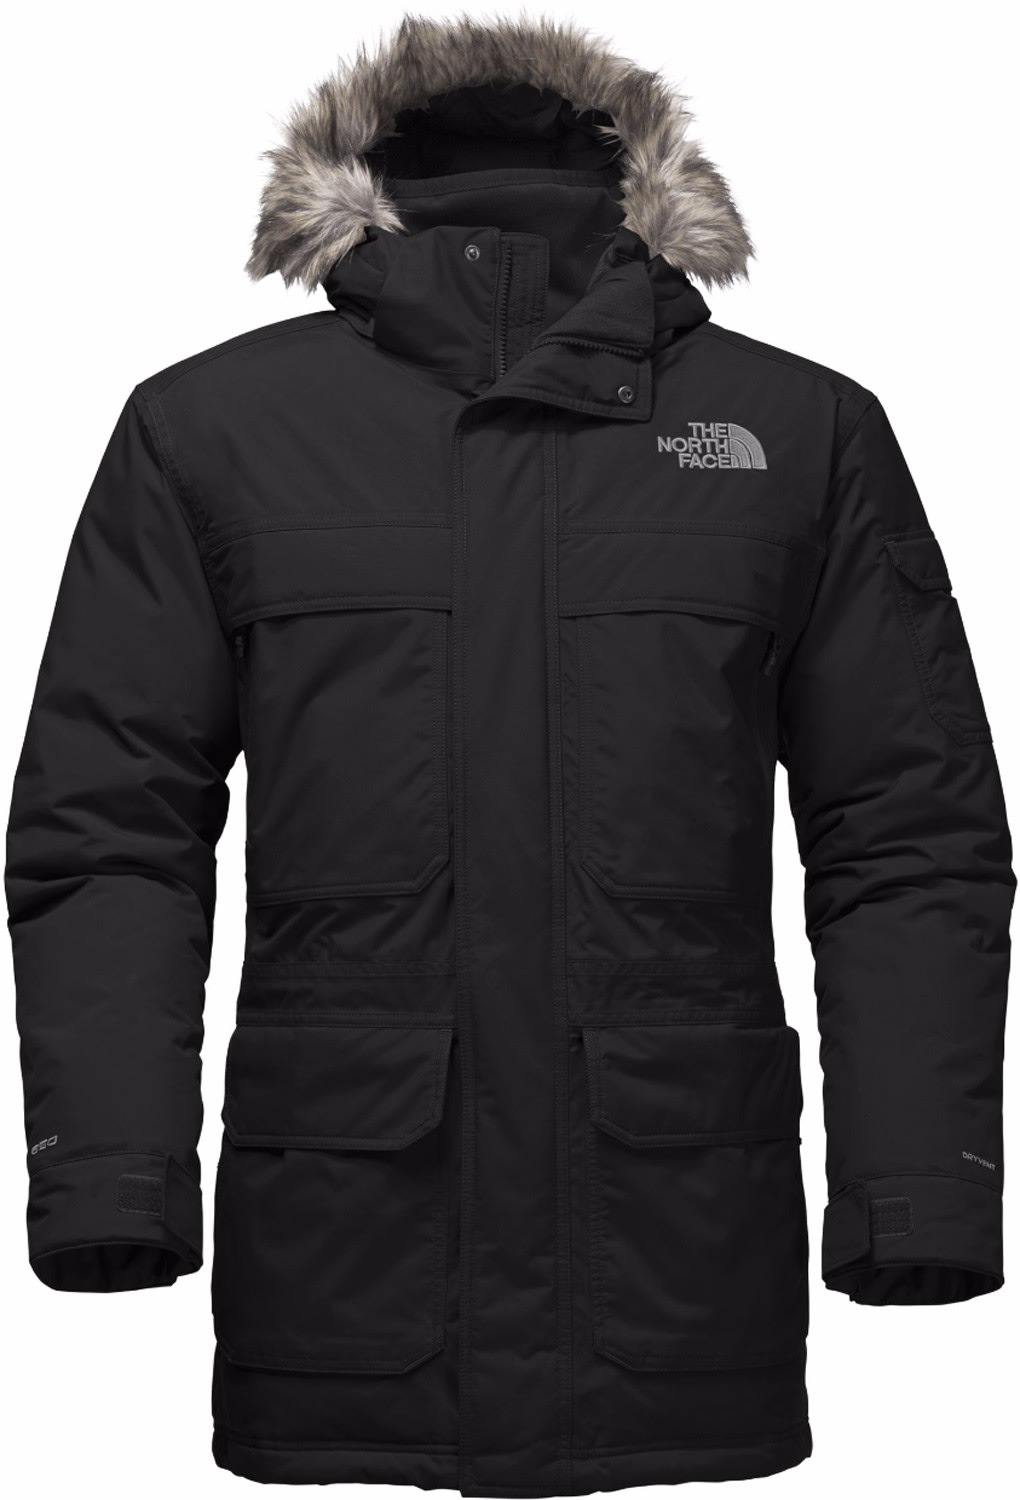 The North Face McMurdo Parka III Jacket 2018